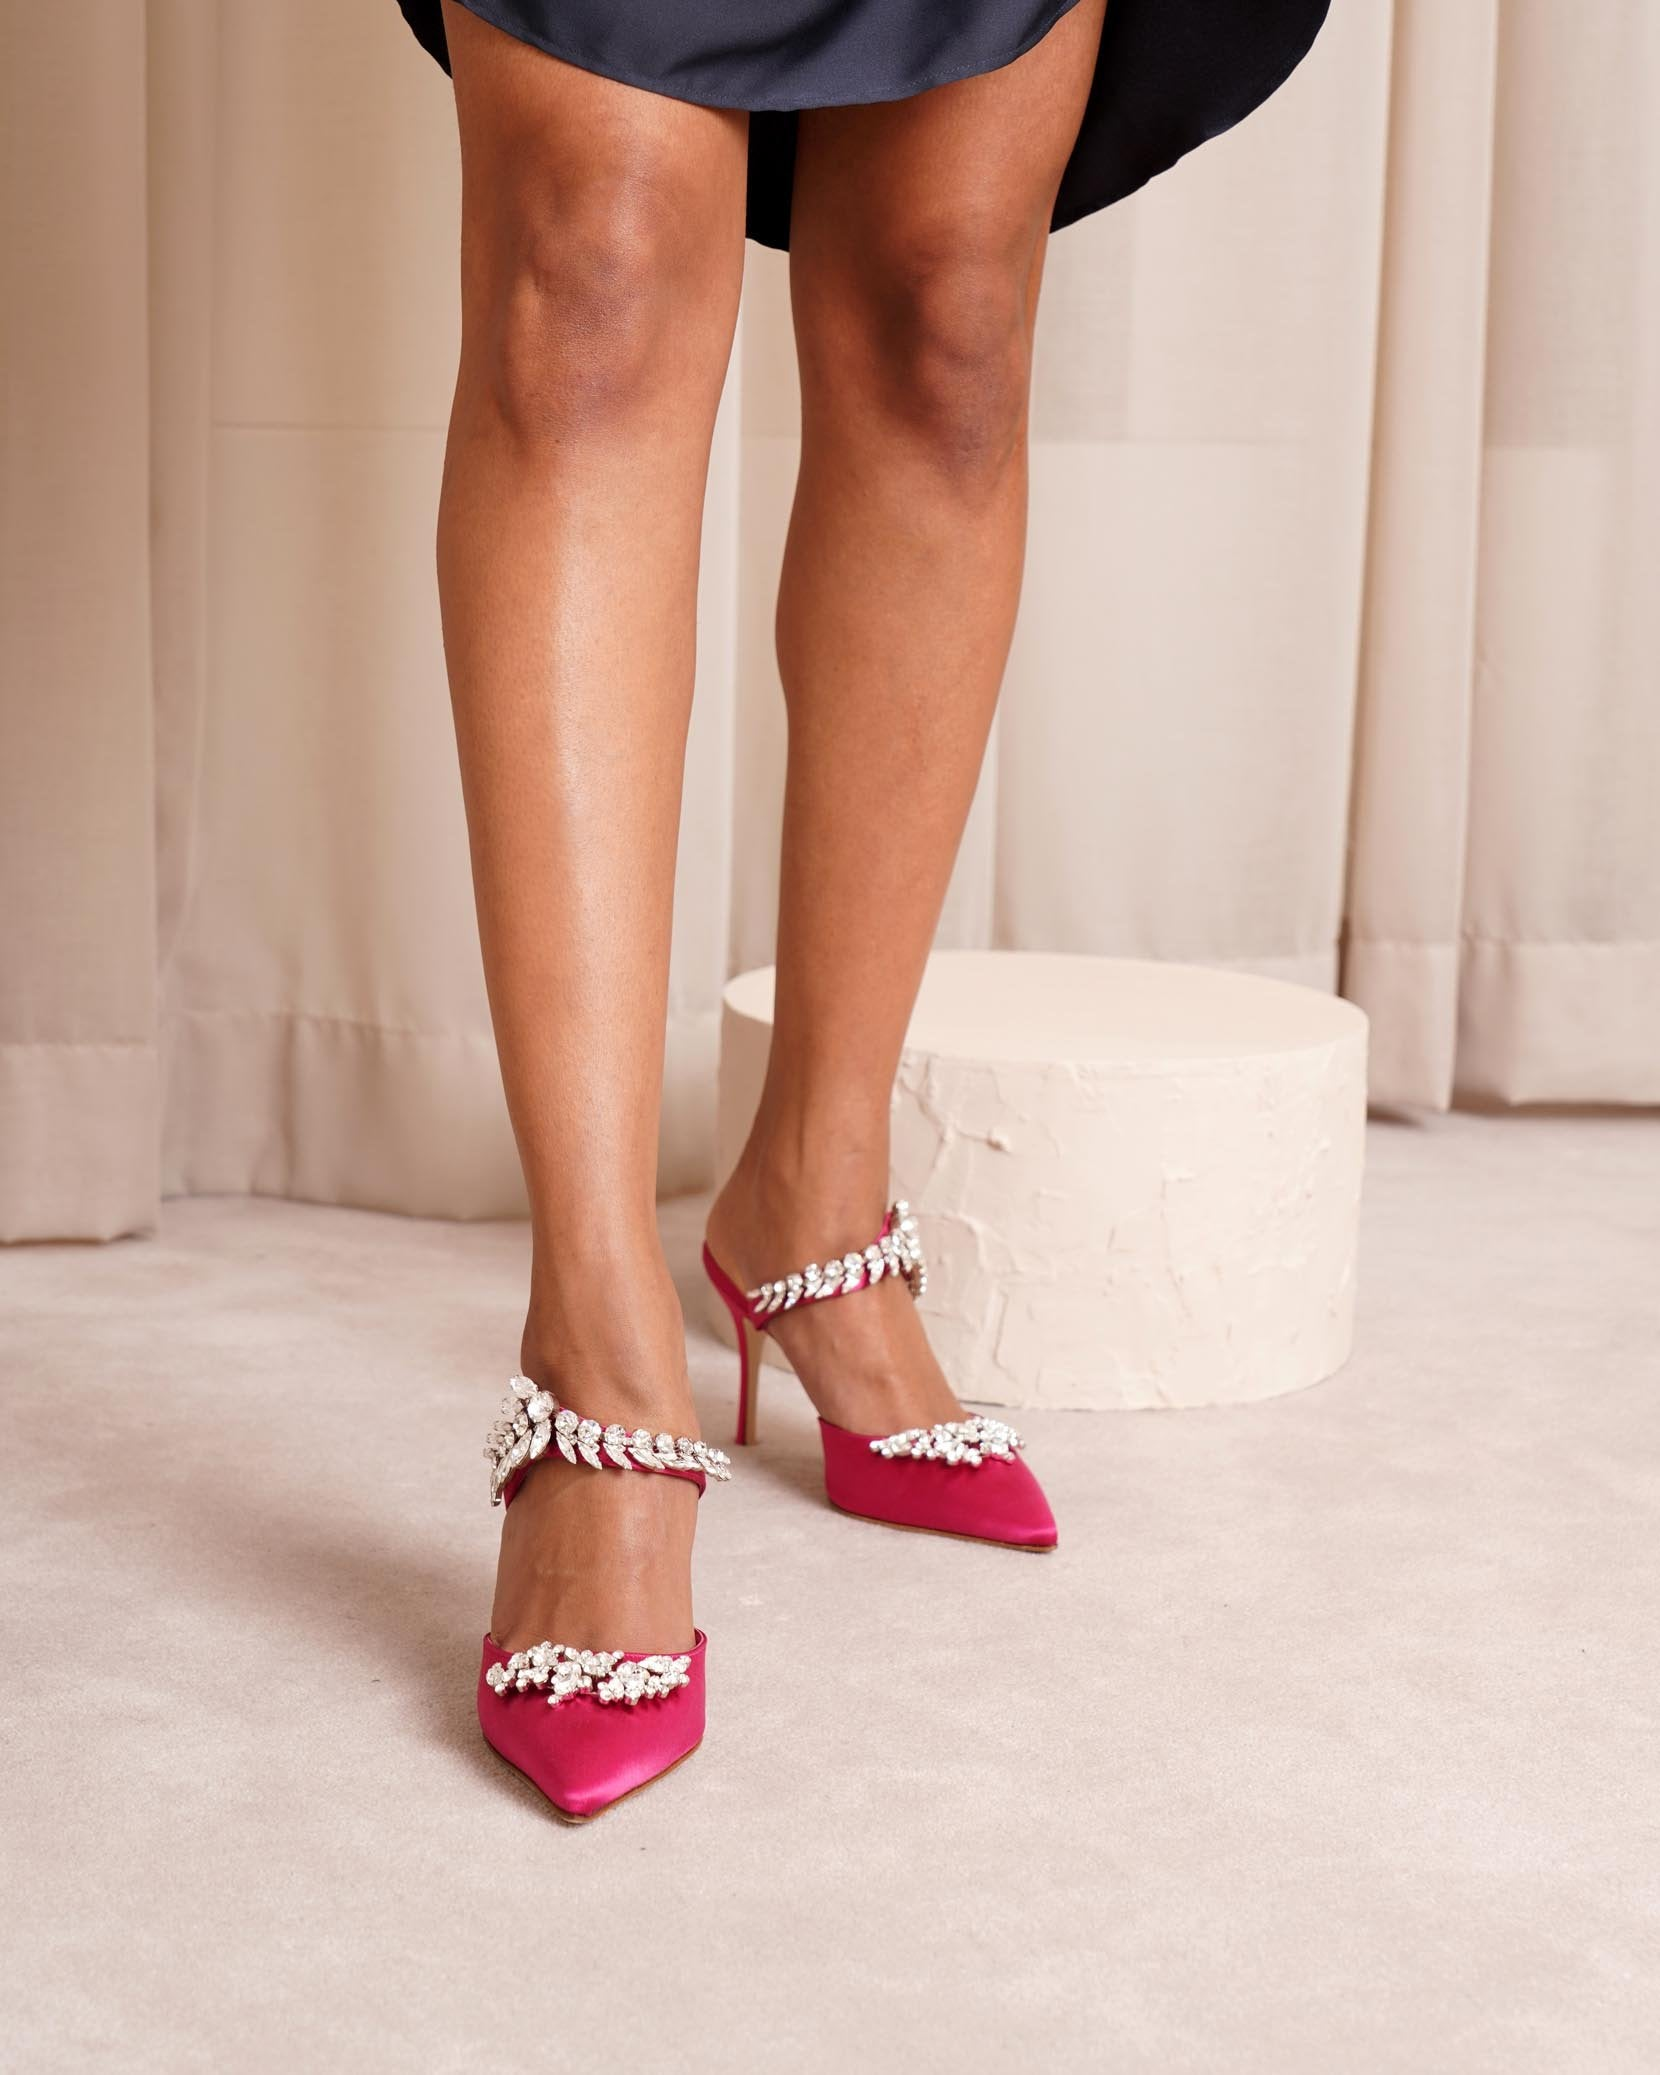 Lurum 90 pink satin pumps